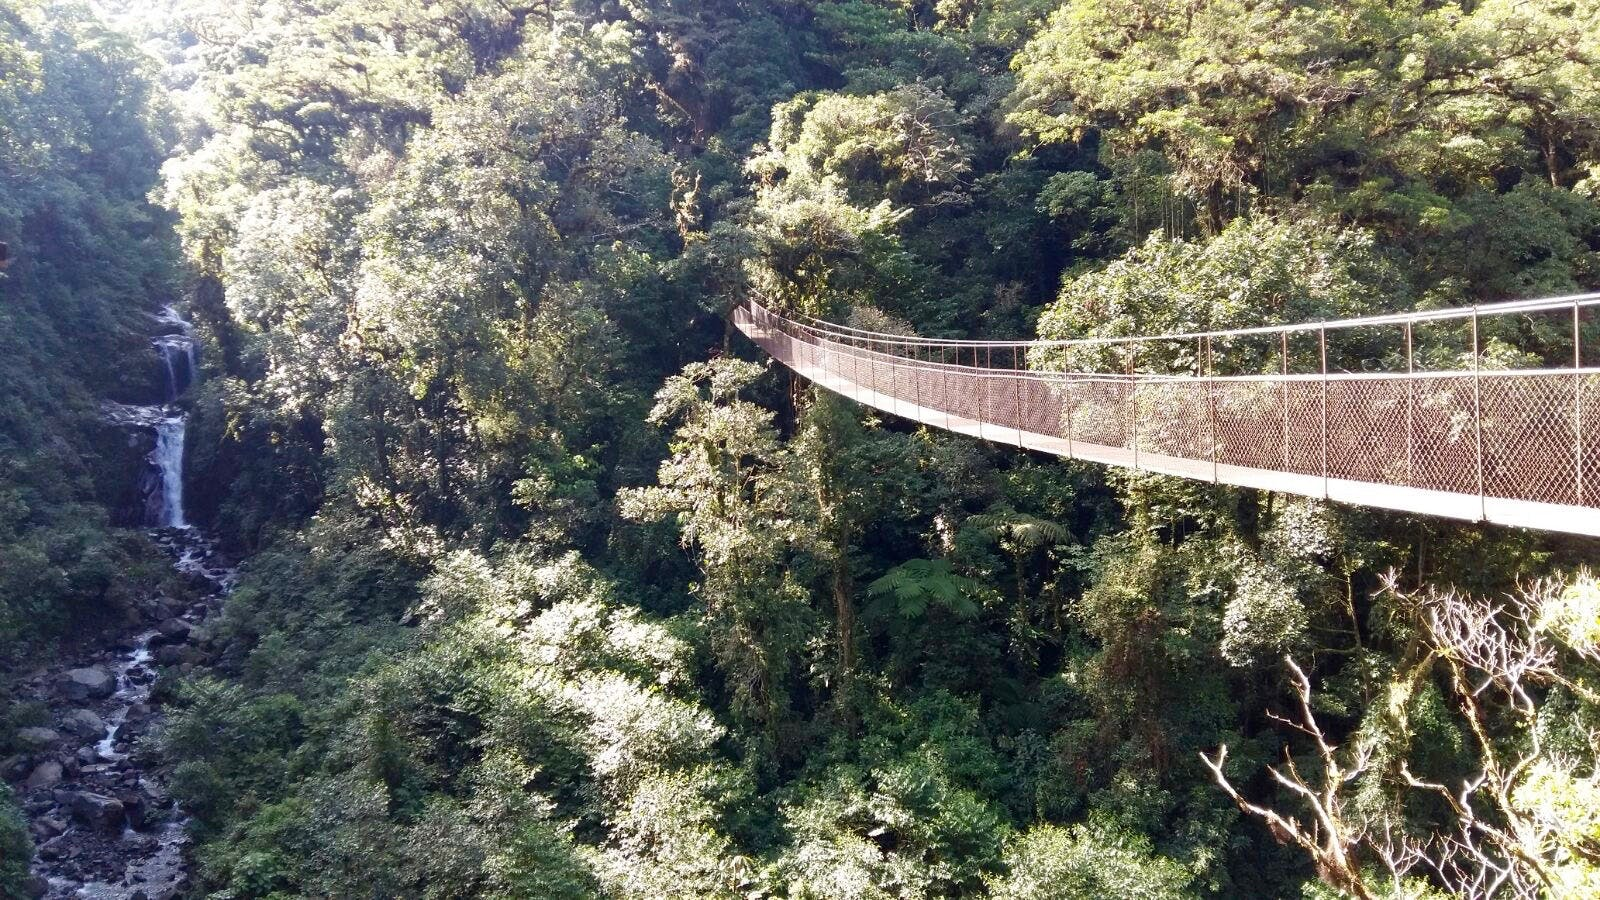 Hanging Bridge Tour